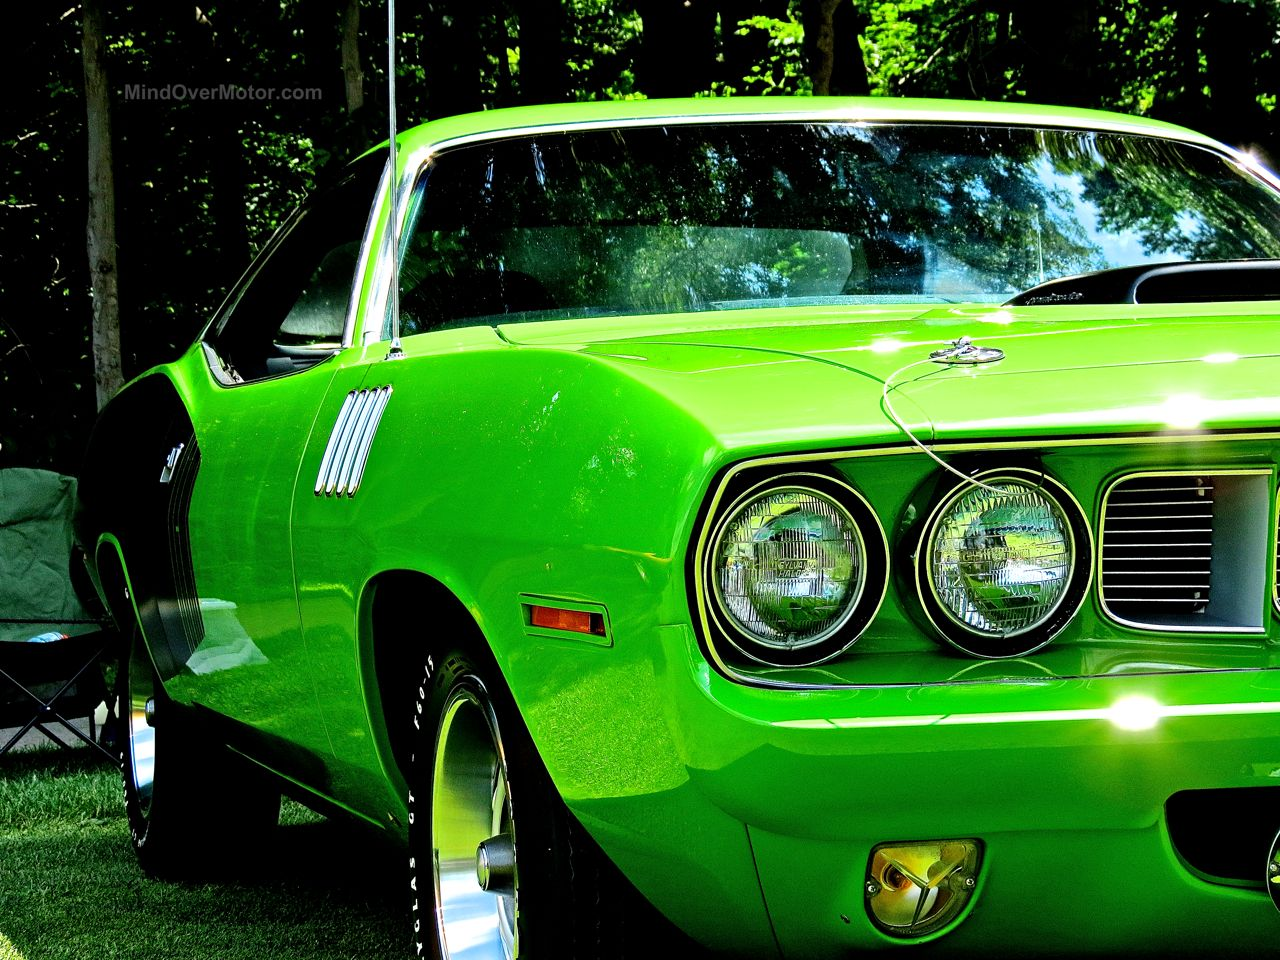 1971 Plymouth Hemicuda Concours of America 4